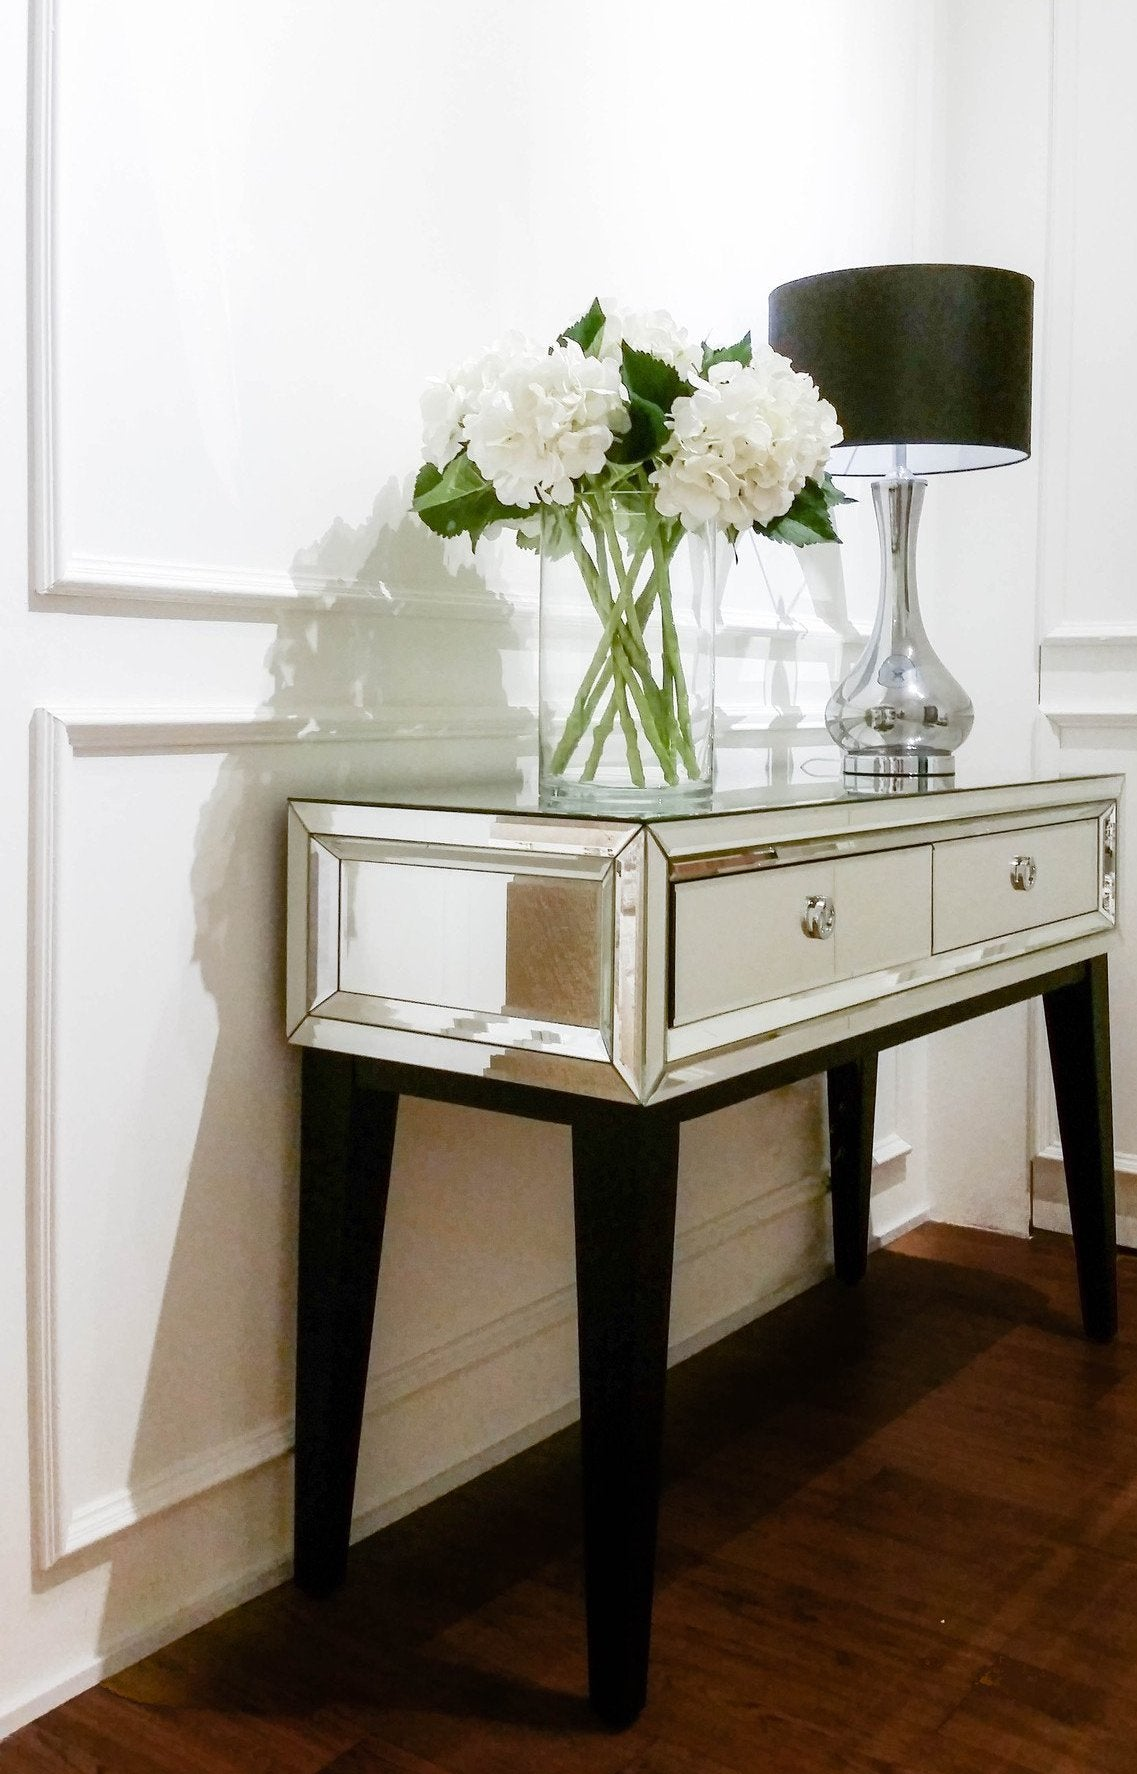 Modern Parisian Mirrored Console Table For Designer Living Room And Foyer  Home Decor ...